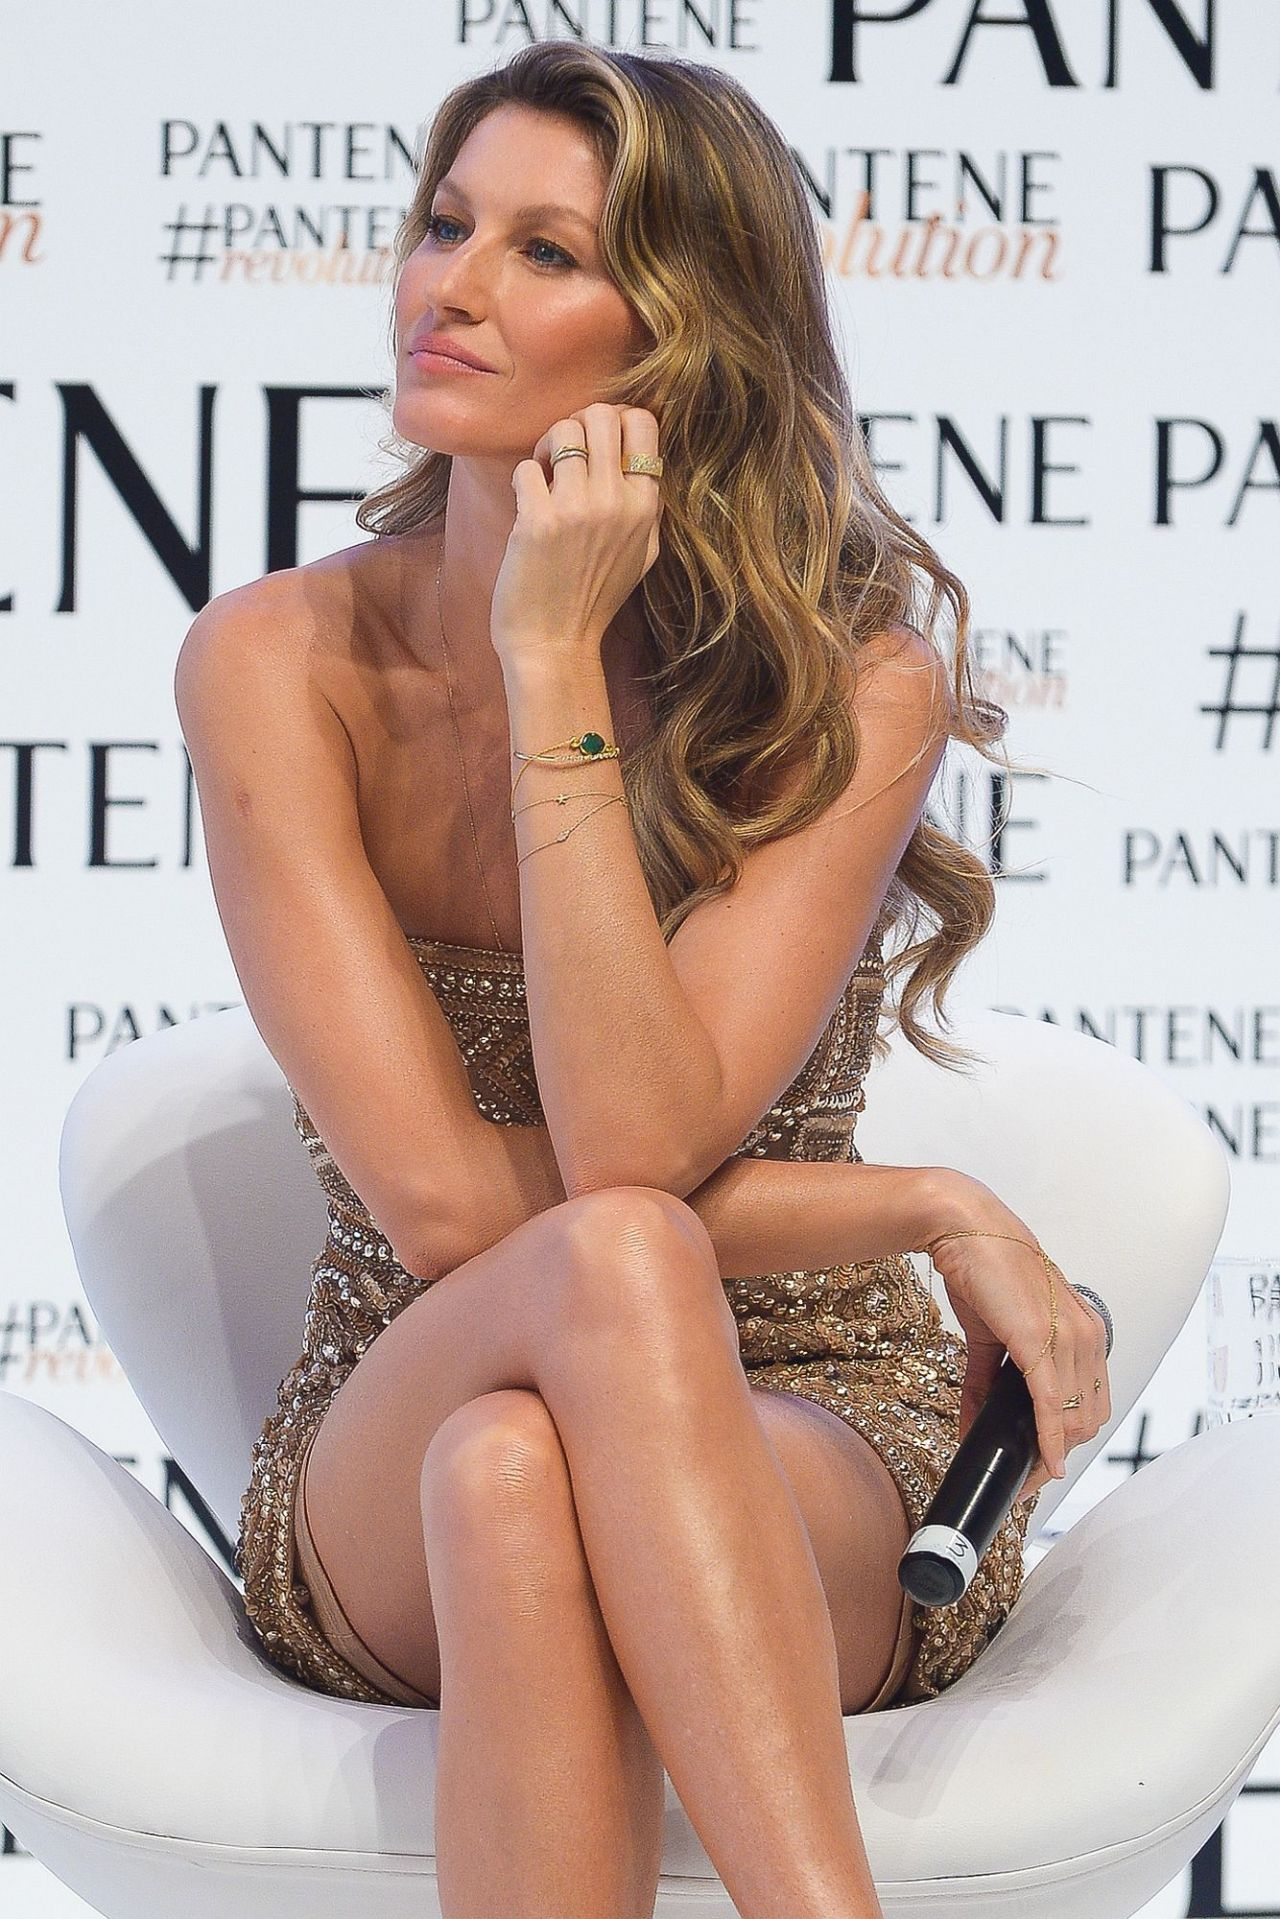 Gisele Bundchen at the Pantene Revolution Launch In Sao ...